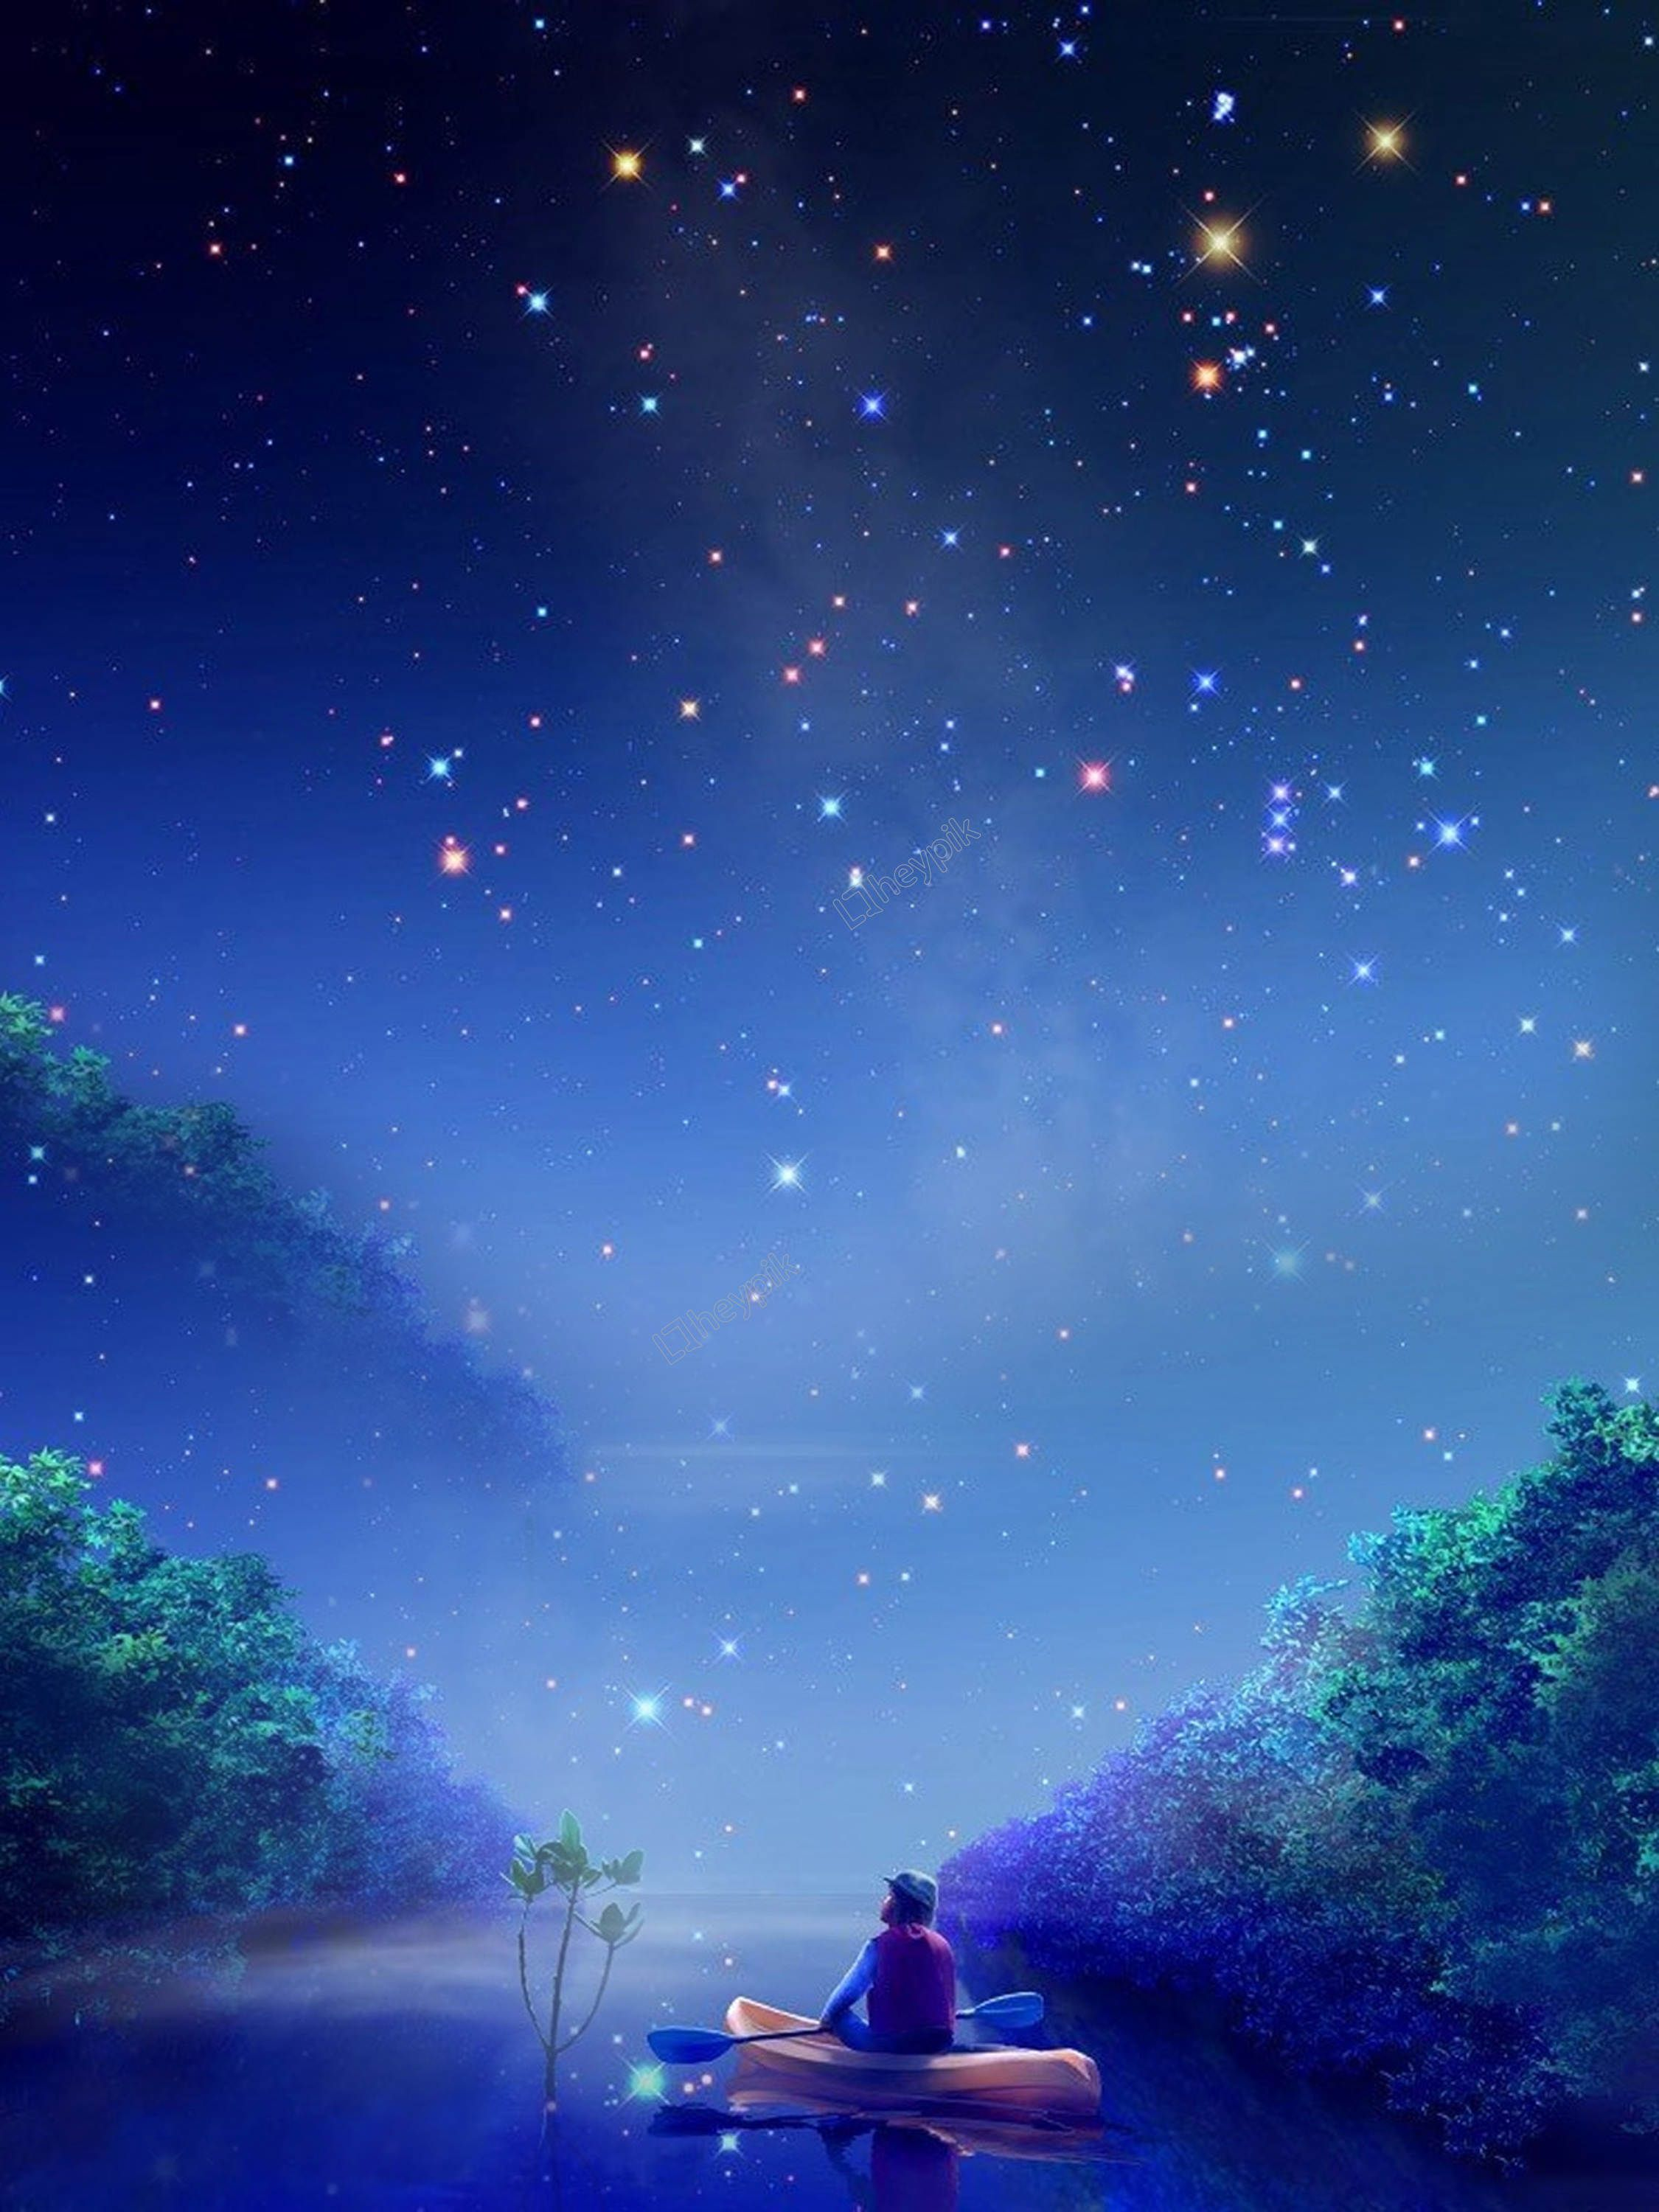 Blue starry sky youth dreaming background Starry in 2019 2250x3000